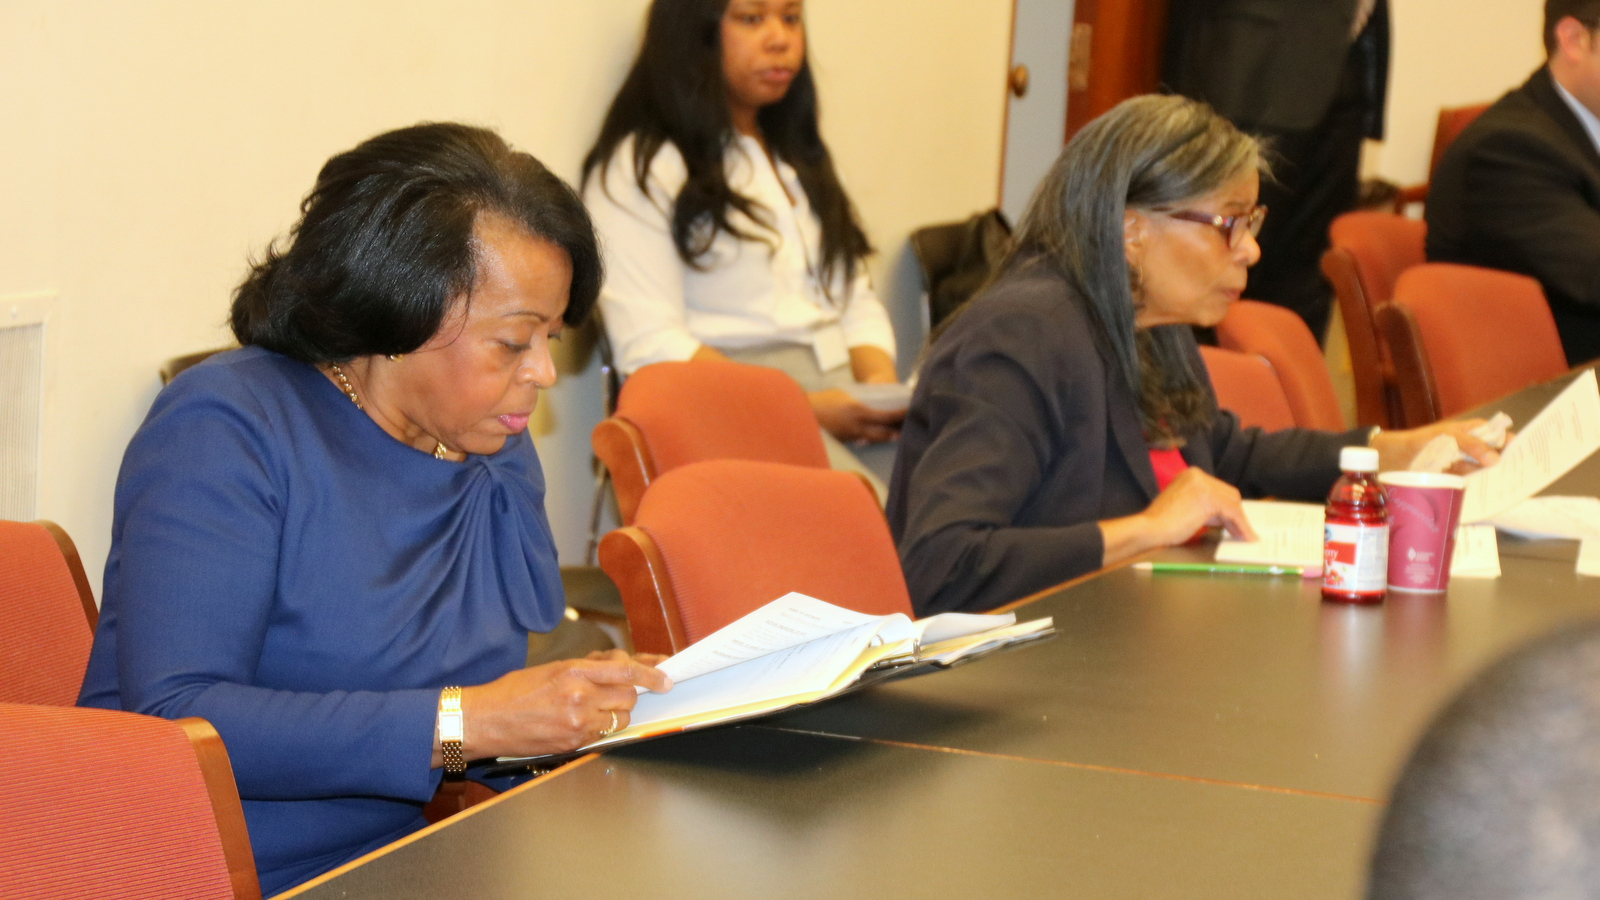 Comptroller Joan Pratt and her deputy Harriette Taylor review documents at the Board of Estimates pre-meeting. (Fern Shen)